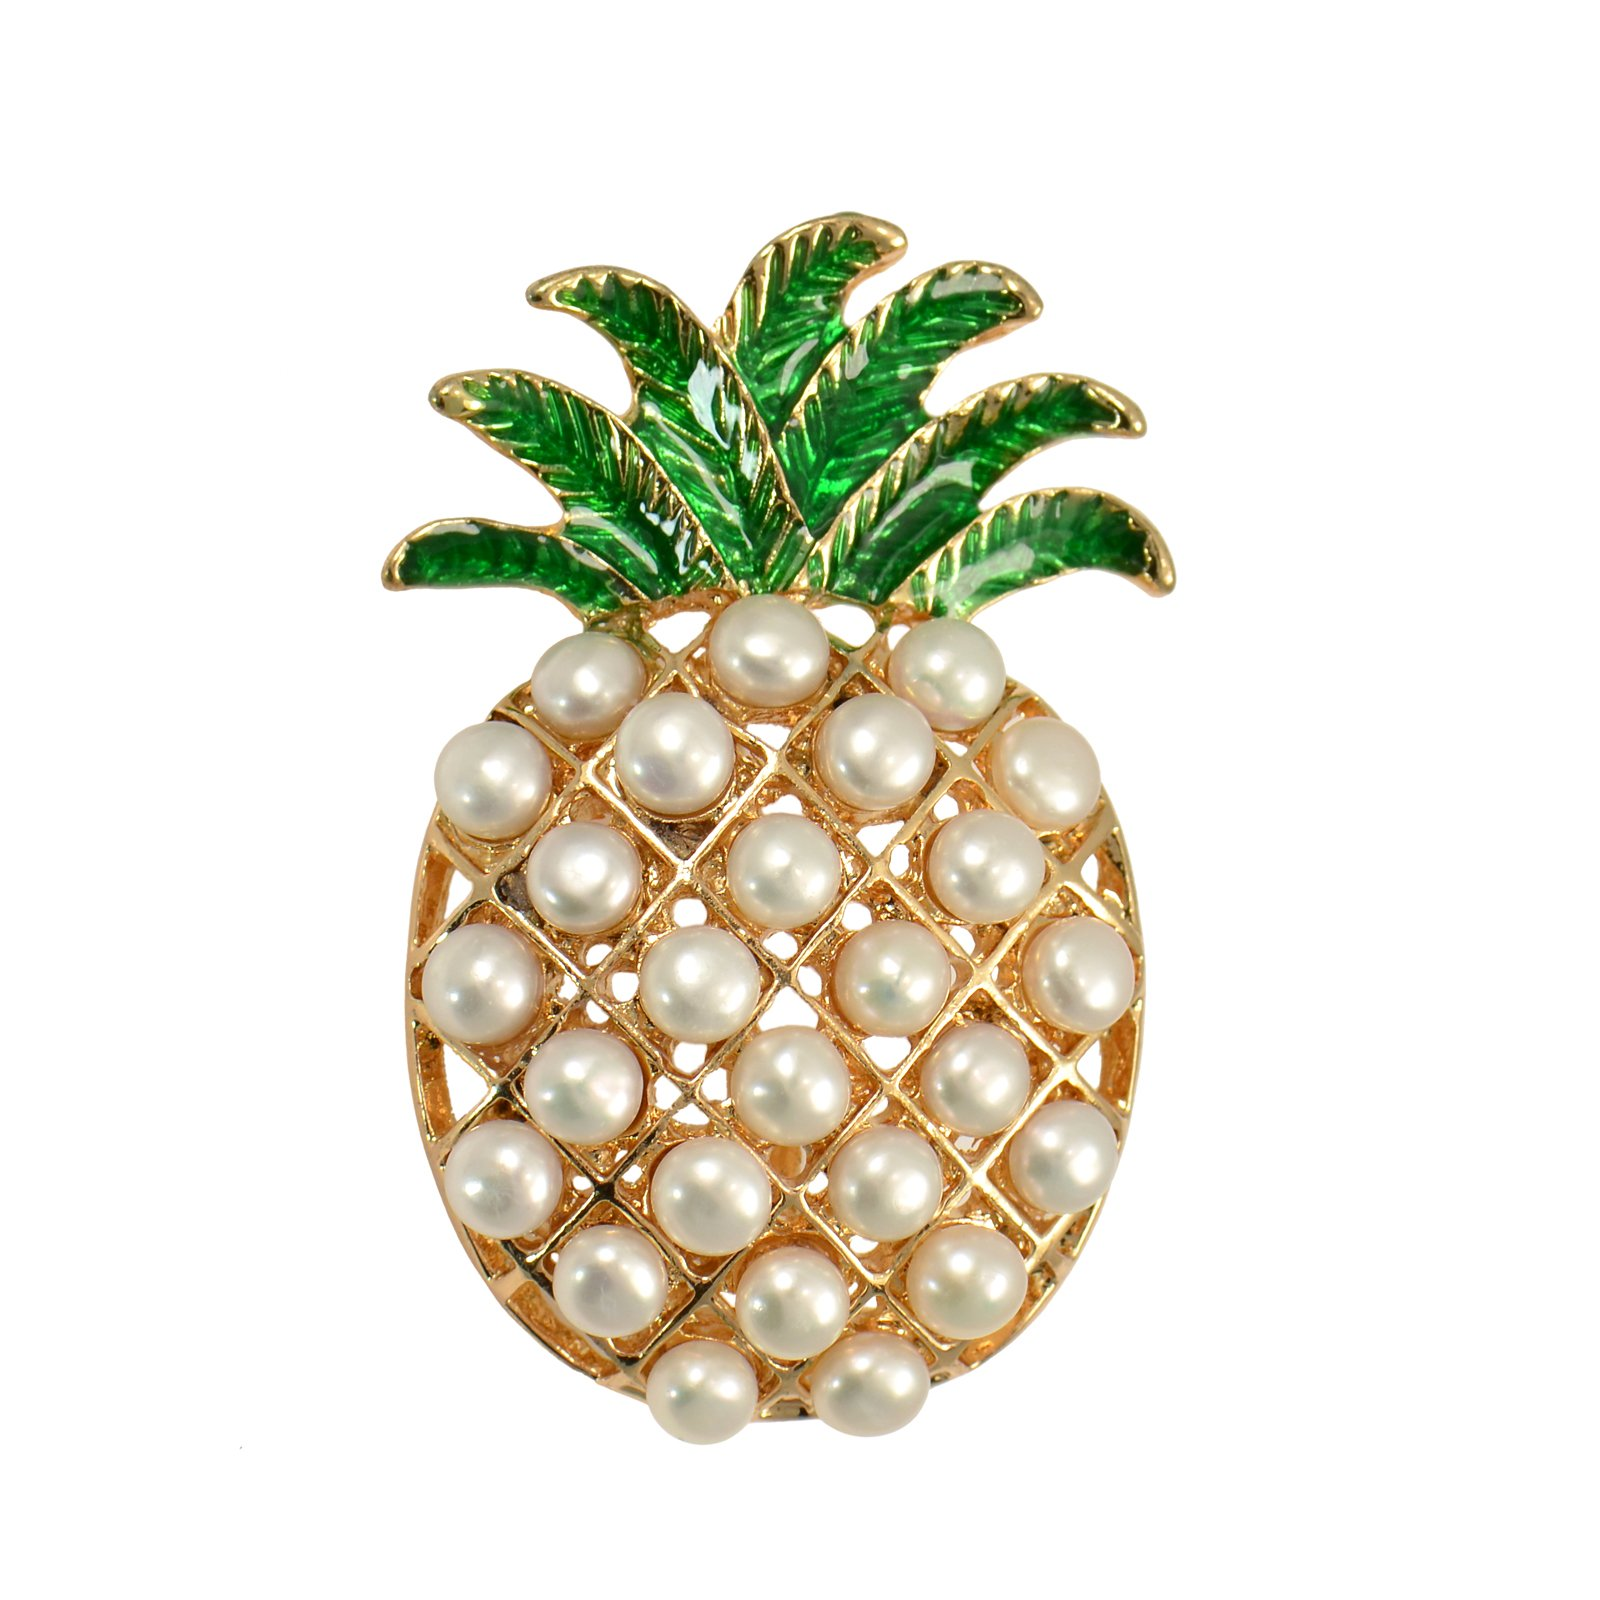 Paialco 4-5MM Cultured Freshwater Pearls Fruit Pineapple Brooch Pin 1.2'' x 1.8''